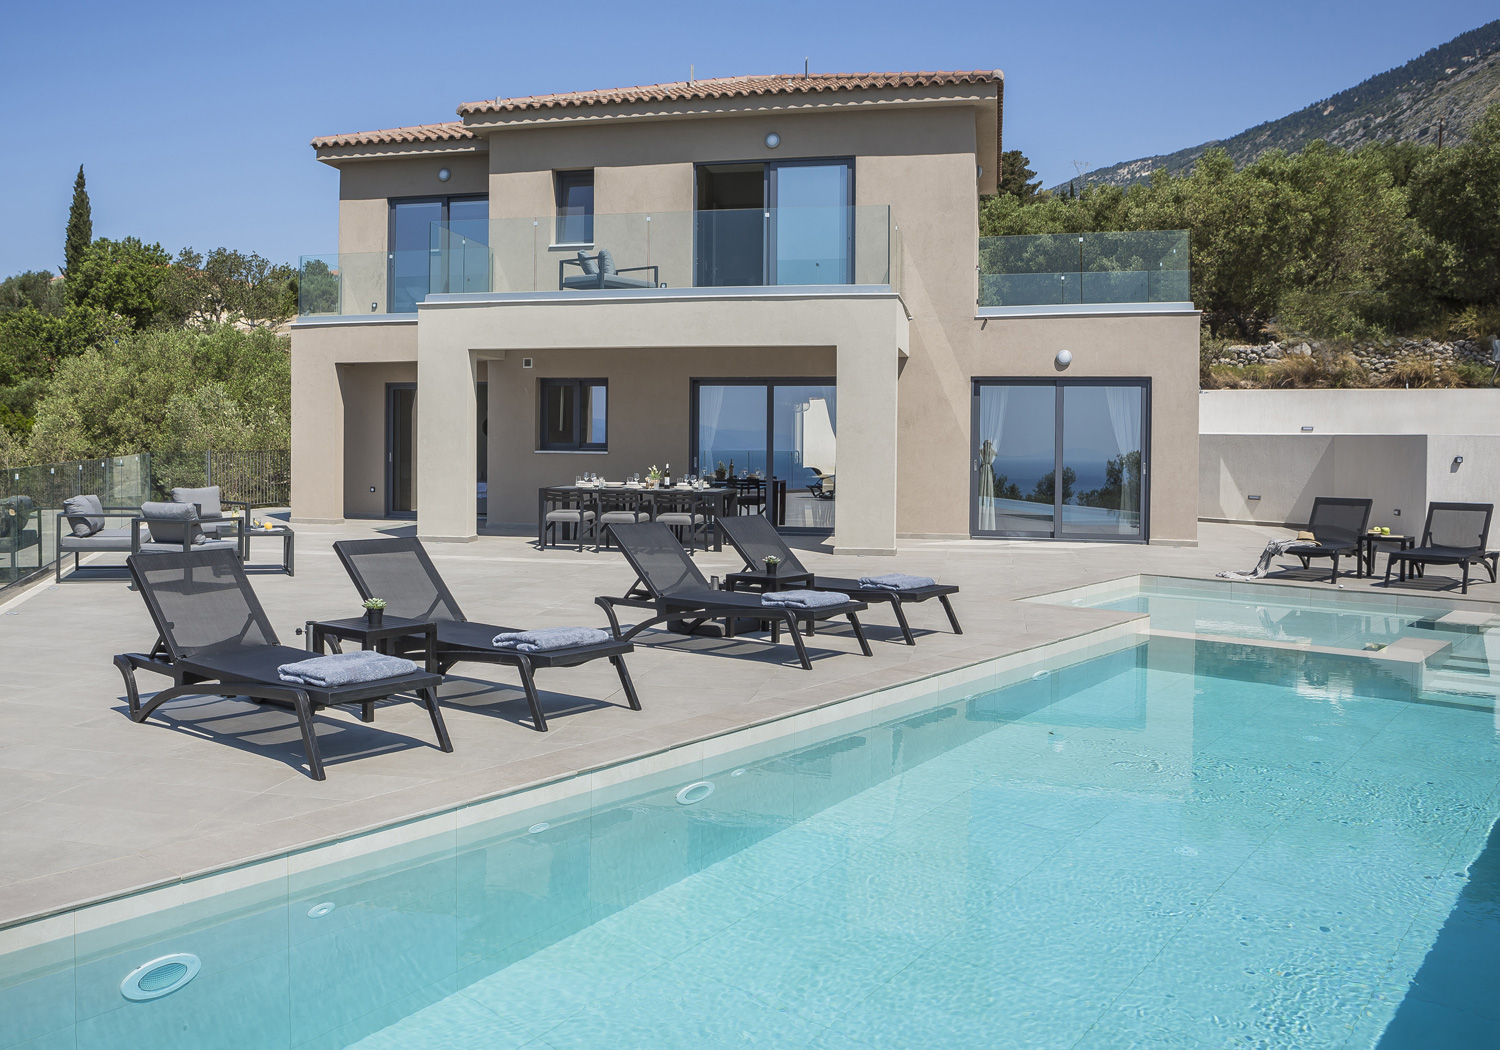 Accommodation Lourdas Kefalonia - Kefalonia Accommodation - Kefalonia Villas - Villas Lourdas Kefalonia - Villas in Lourdas Kefalonia - Lourdas Beach View Villa - Lourdas Beach Villas Kefalonia - Wedding Villas Kefalonia - Luxury Villas Kefalonia